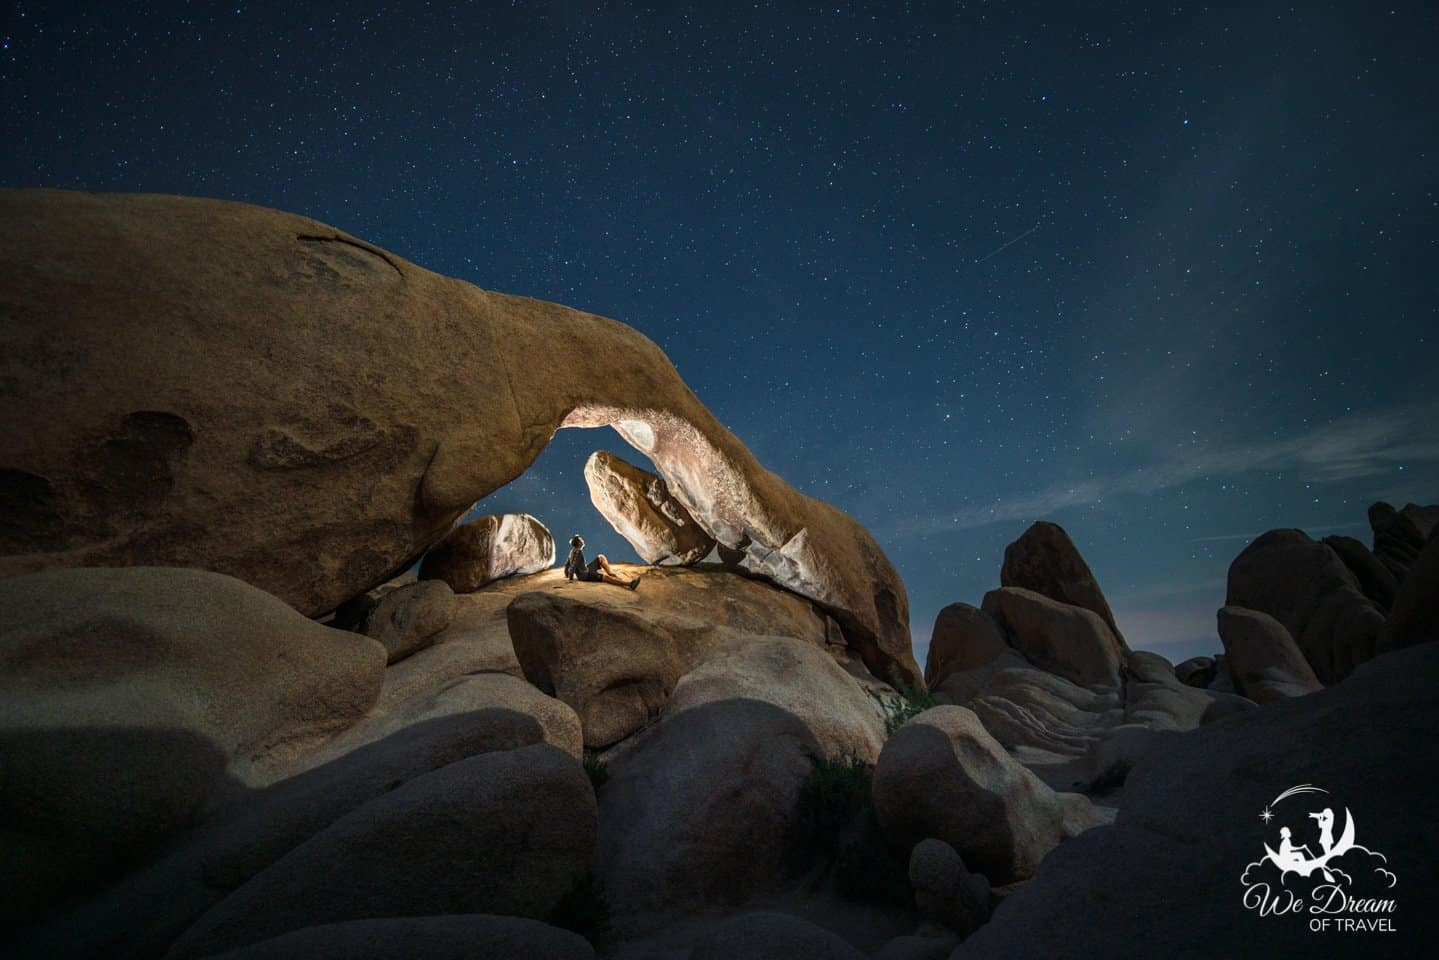 A photo showcasing the still of night while stargazing at Arch Rock in Joshua Tree.